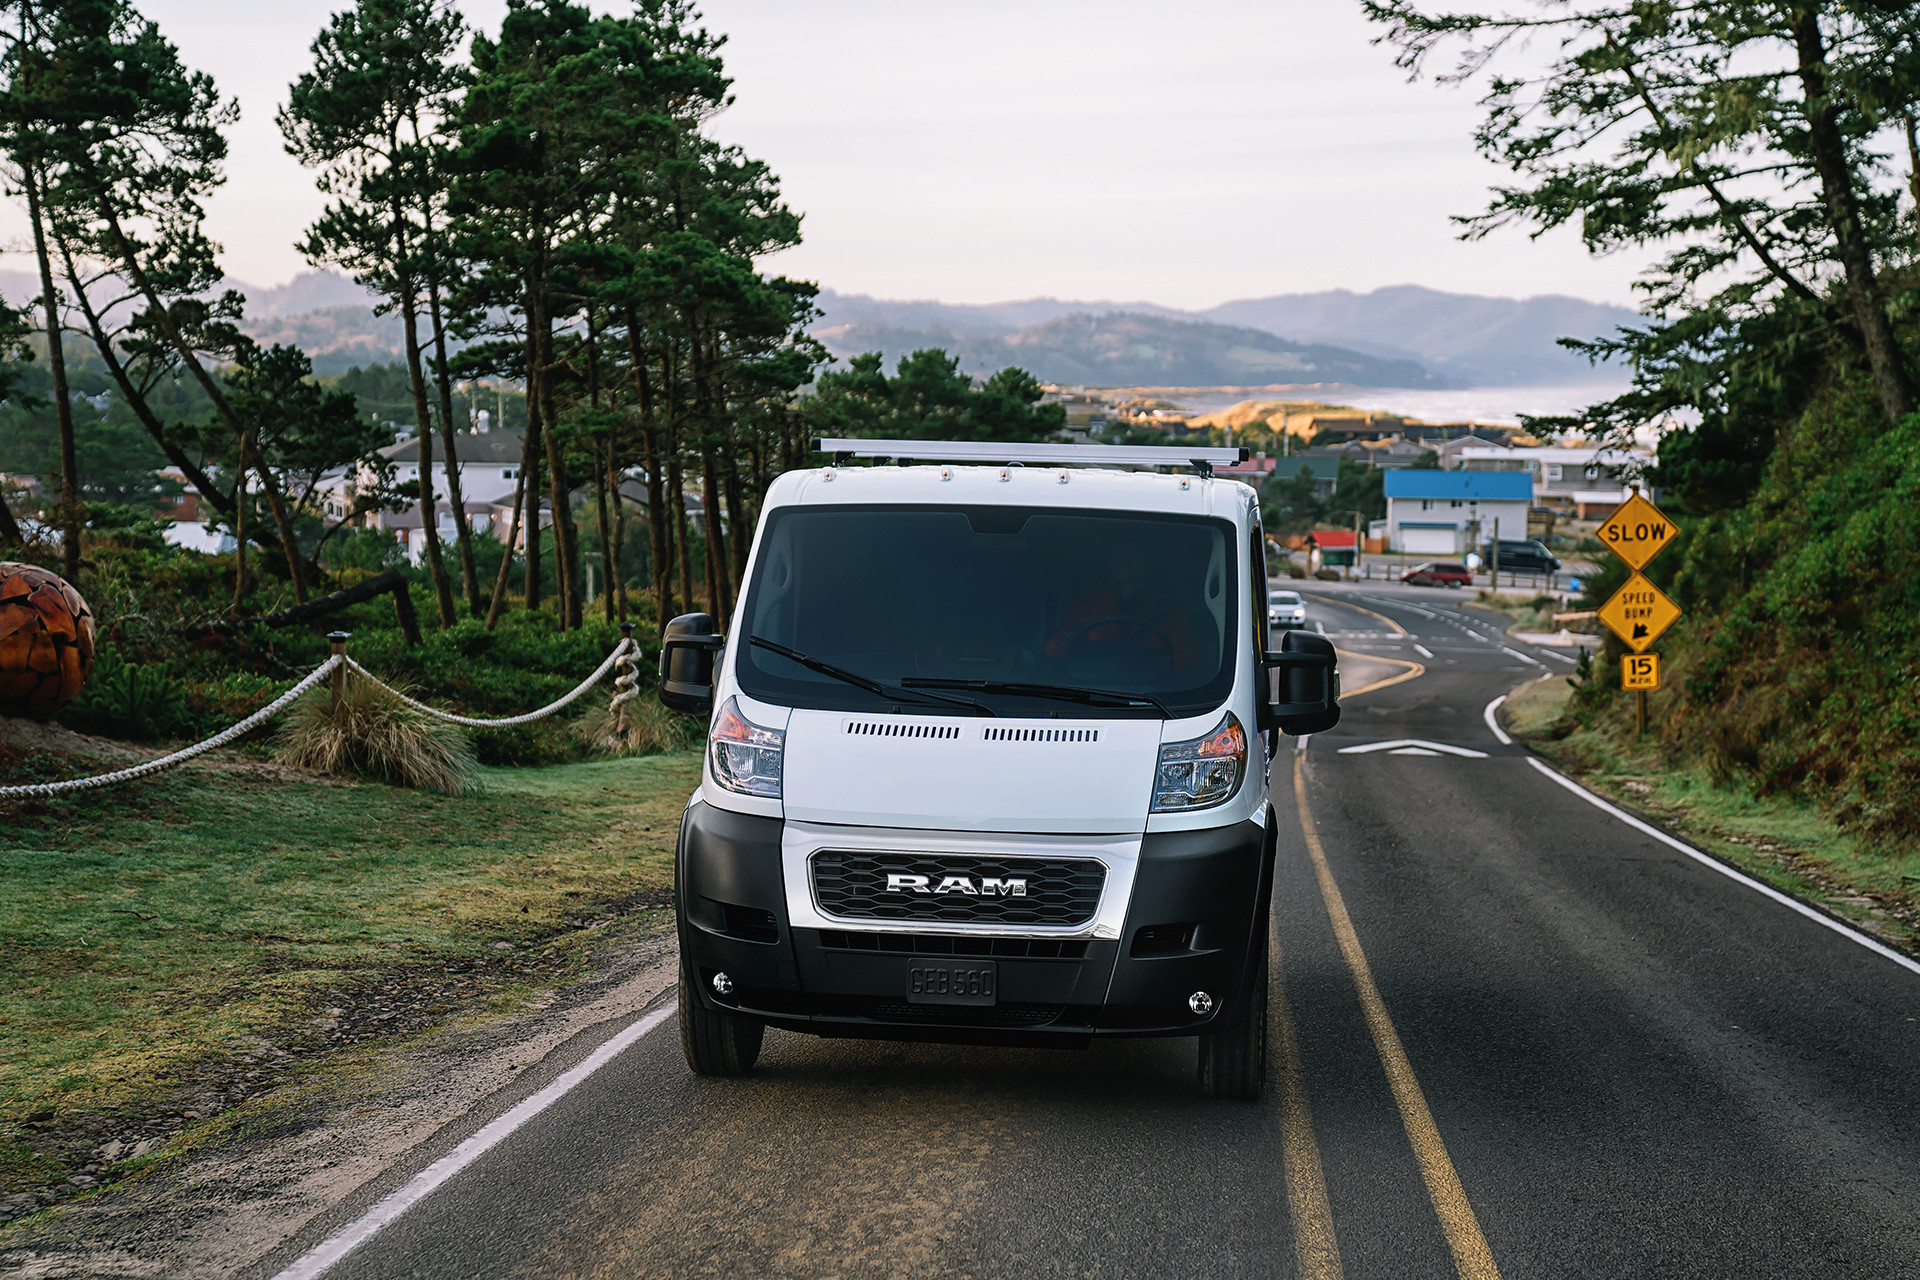 2019 Ram ProMaster front view driving down highway, shown in white